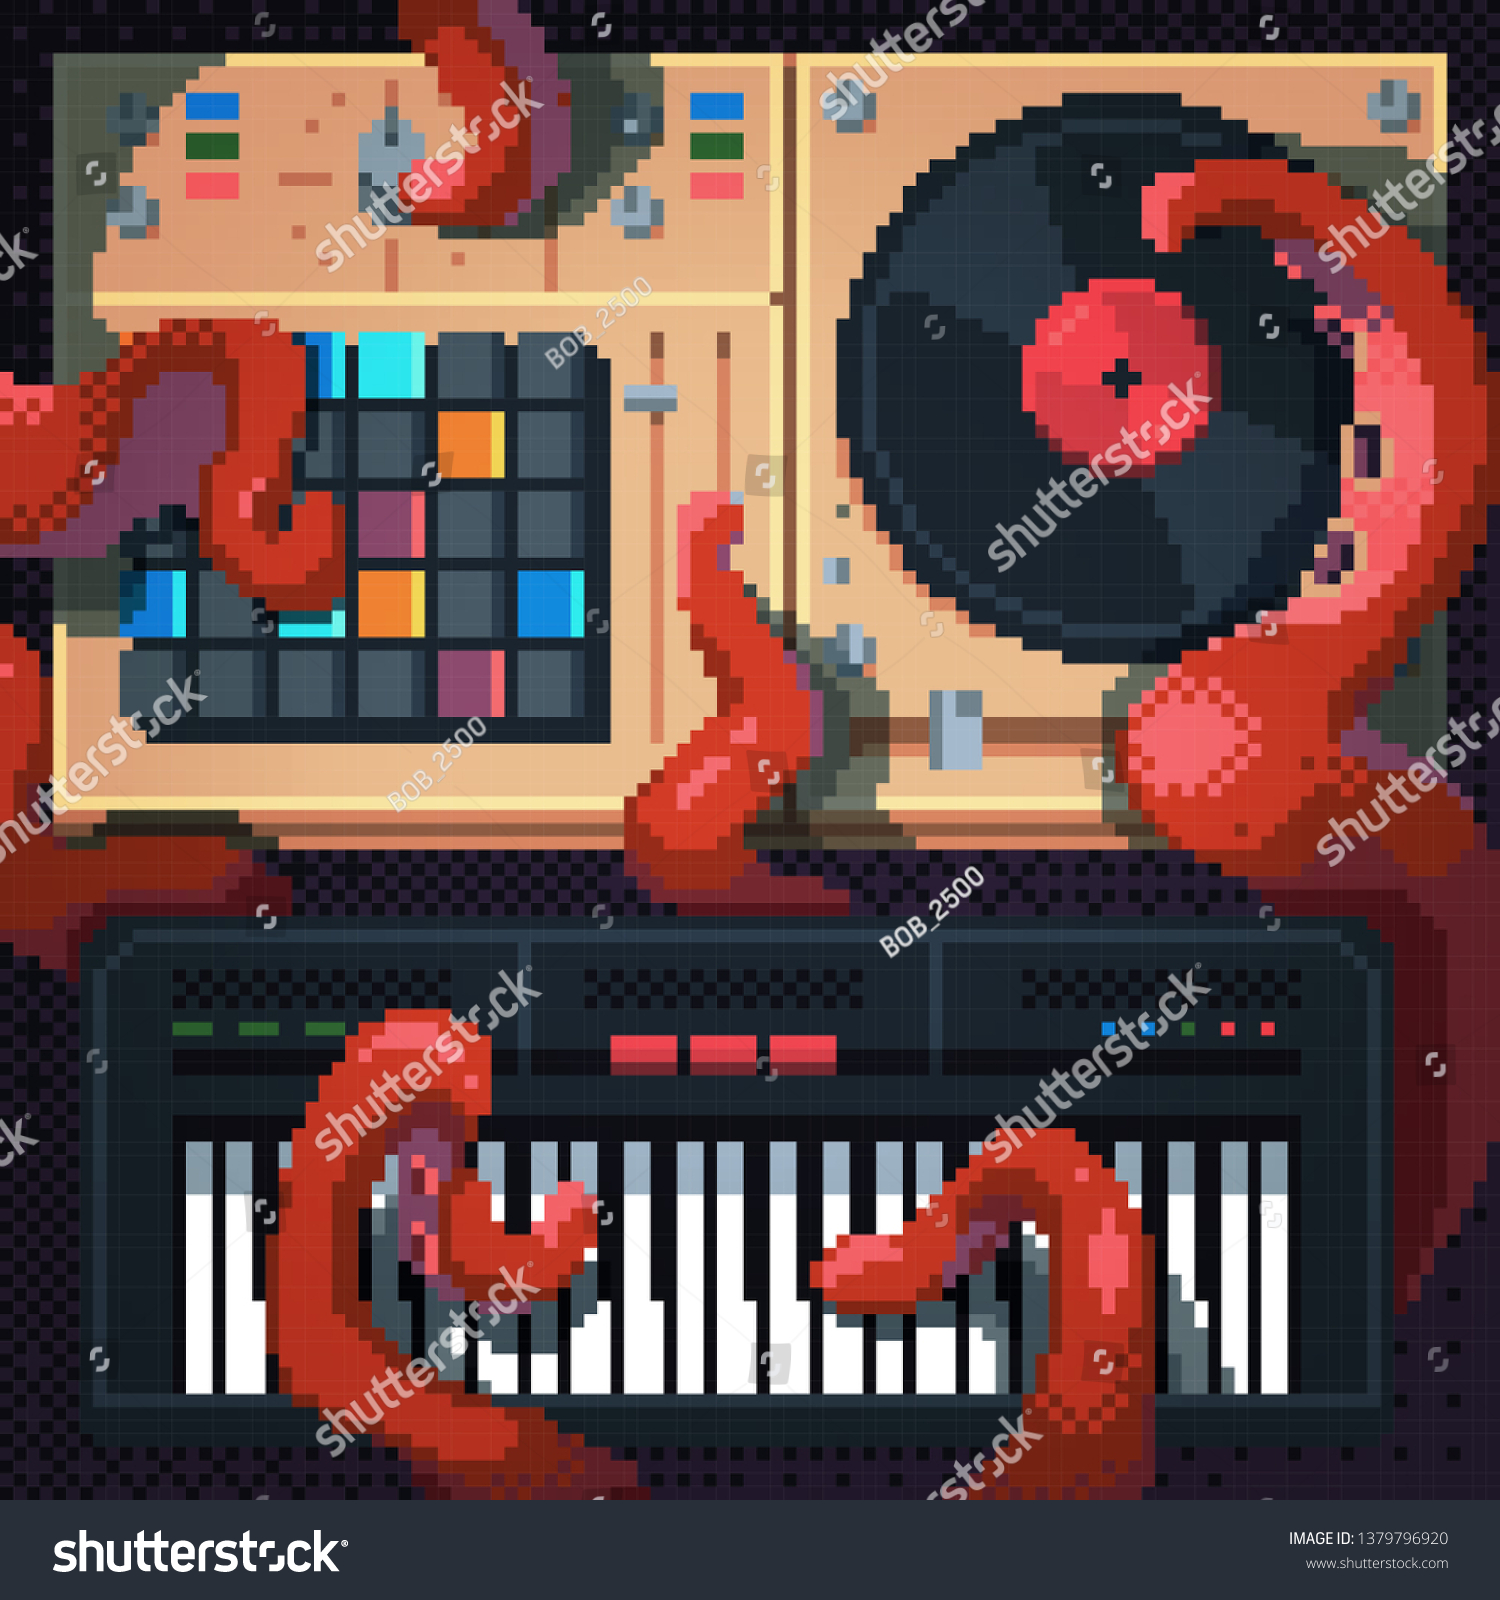 Cool Octopus Art Cool Dj Octopus Pixel Art Style Stock Vector Royalty Free